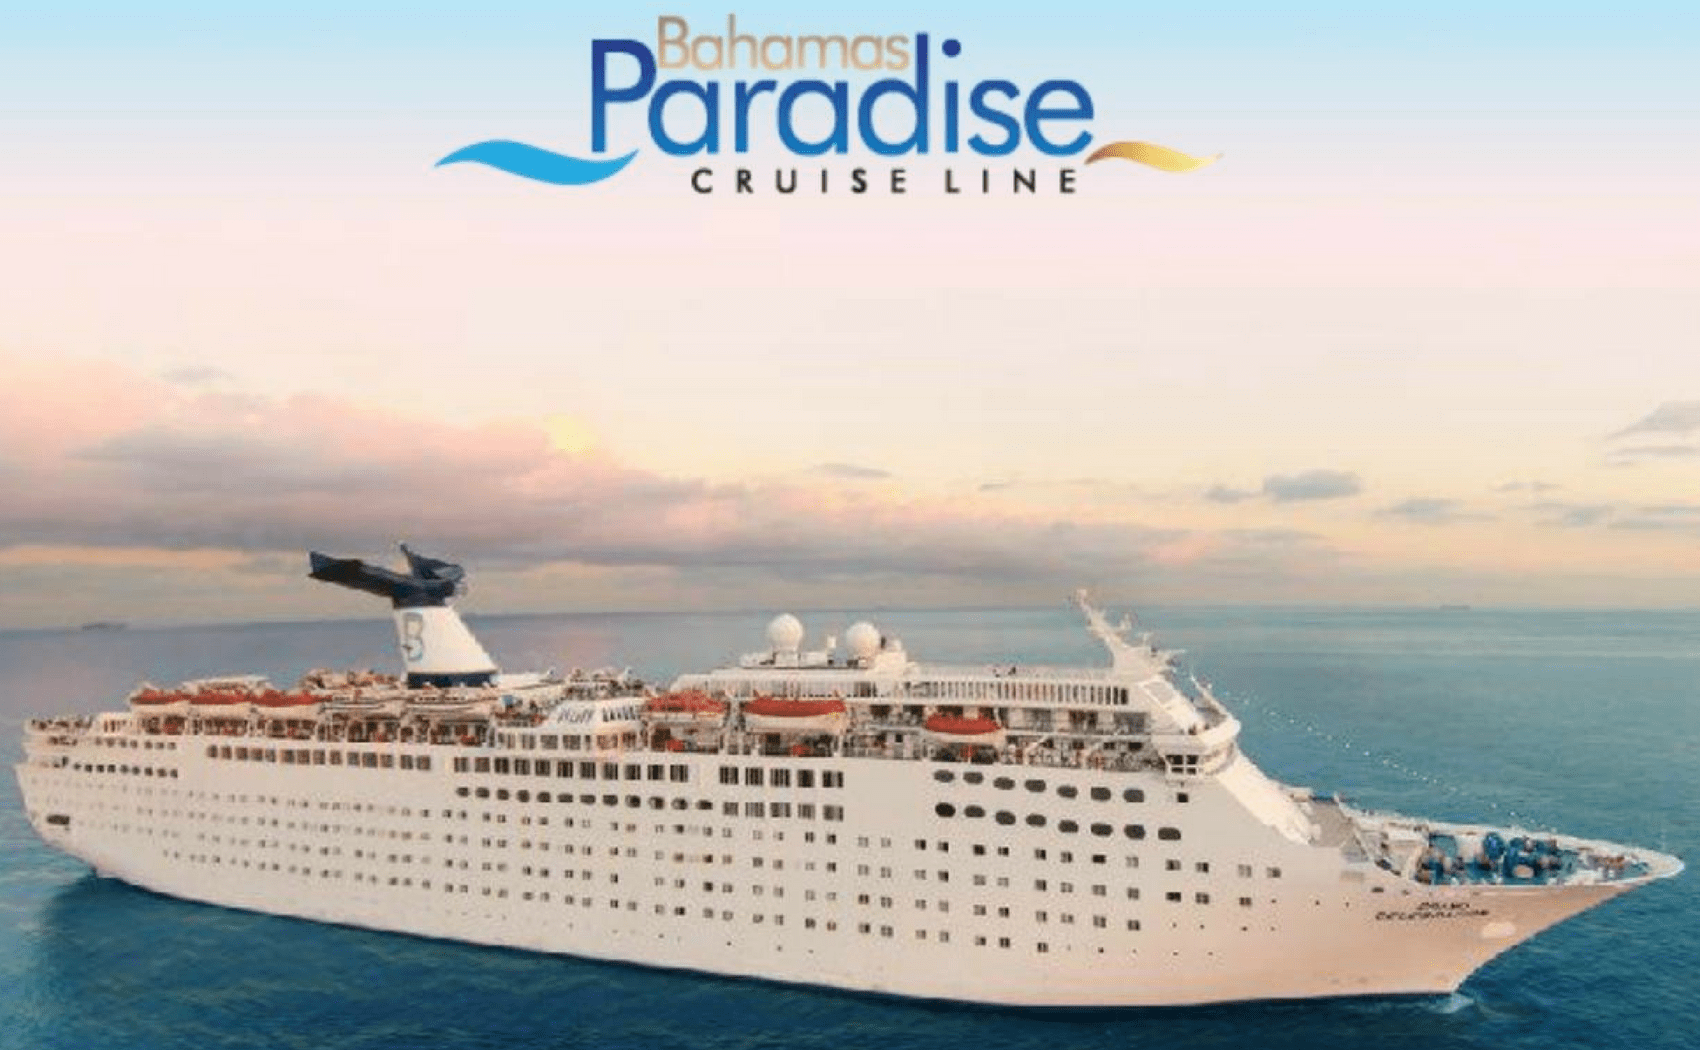 Bahamas Paradise Cruise line introduces single passenger rate